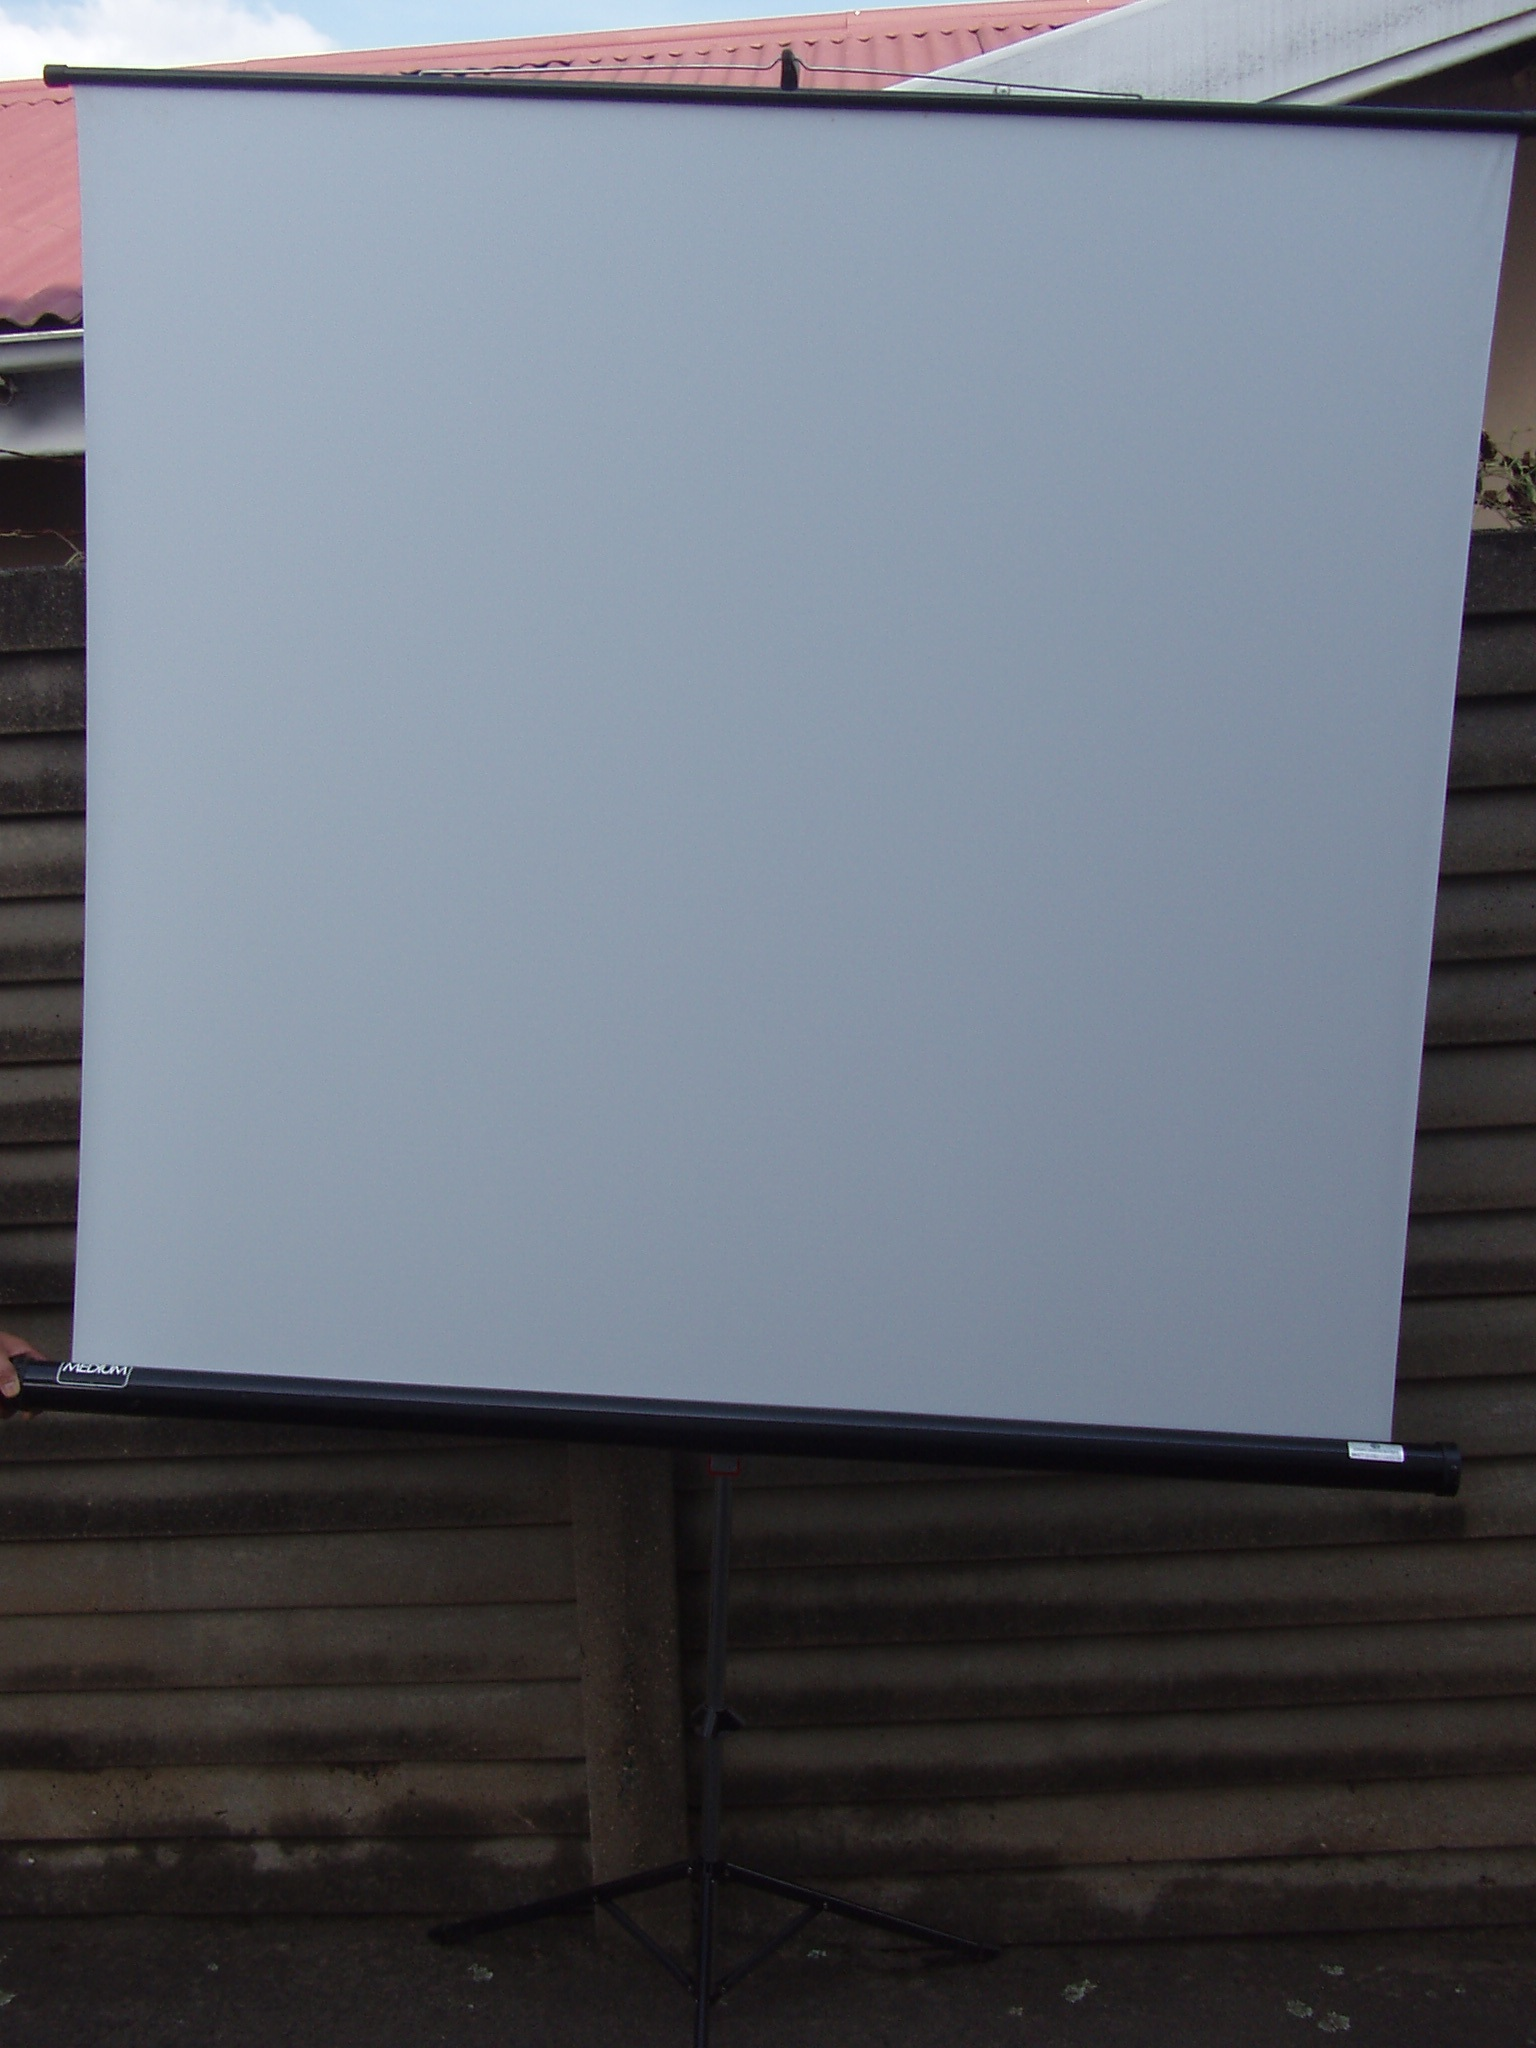 Projector Screen - On Tripod Stand - 1.5m x 1.4m - large screen in excellent condition